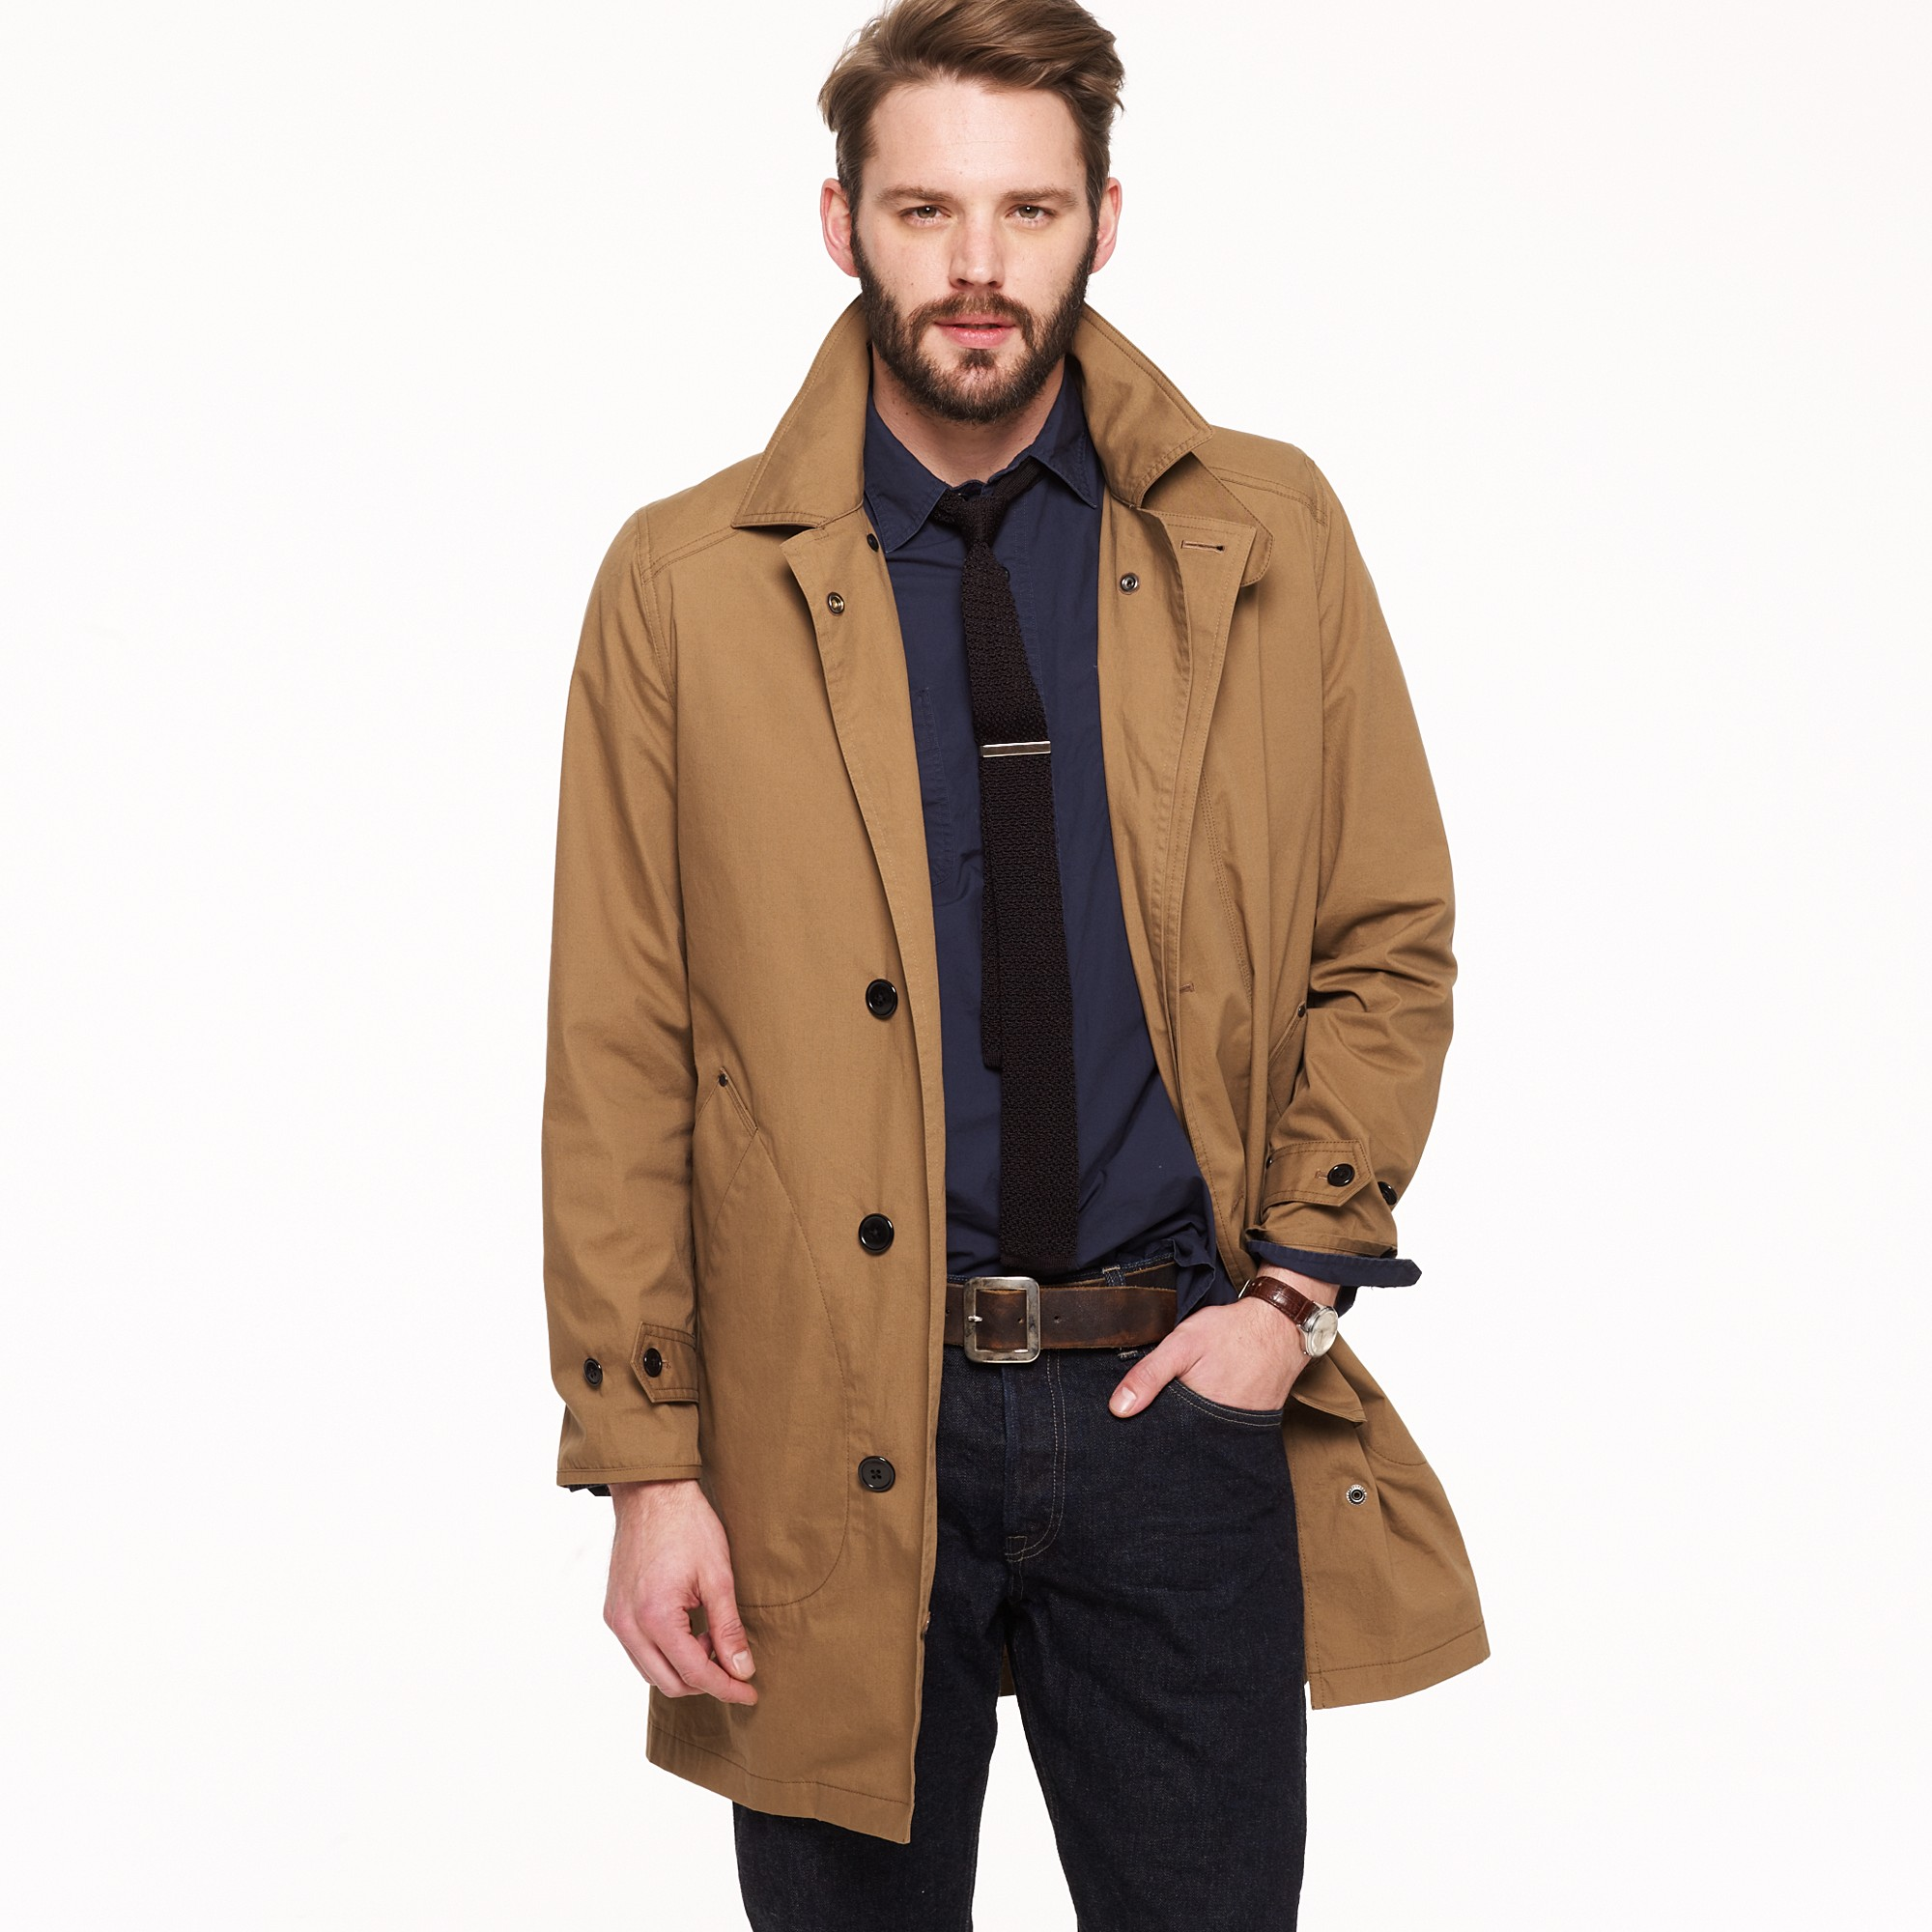 men's camel overcoat, mens camel topcoat, camel hair coat, camel hair blazer mens, camel overcoat outfit men, camel hair trench coat is one of the famous varieties of colored overcoat for its rich golden yellow color.